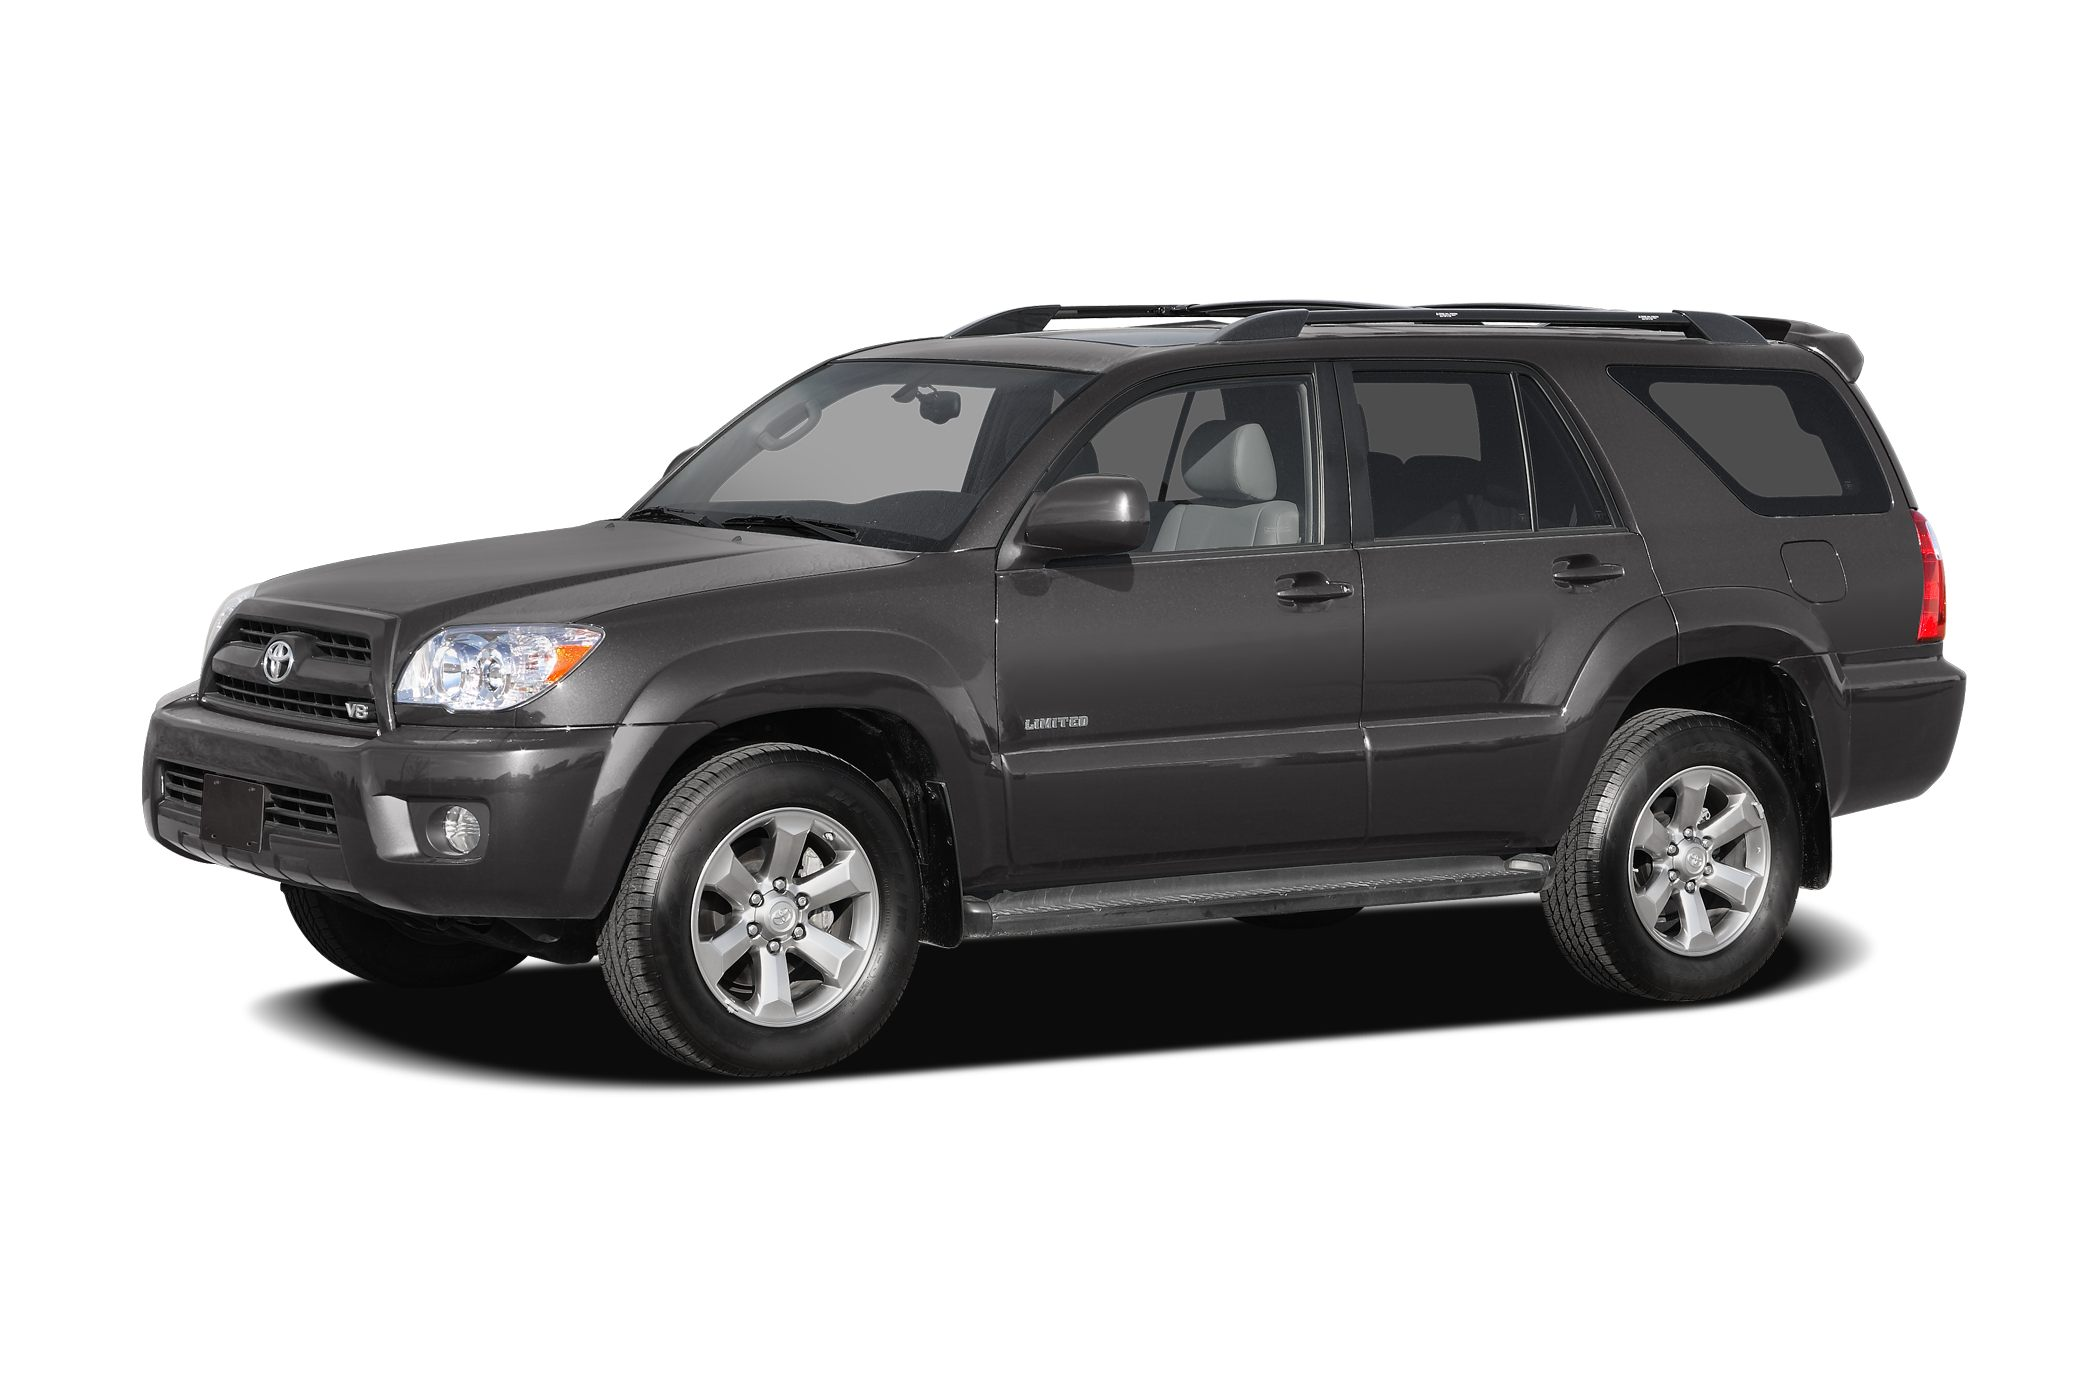 2007 Toyota 4Runner SR5 SUV for sale in Carrollton for $0 with 140,647 miles